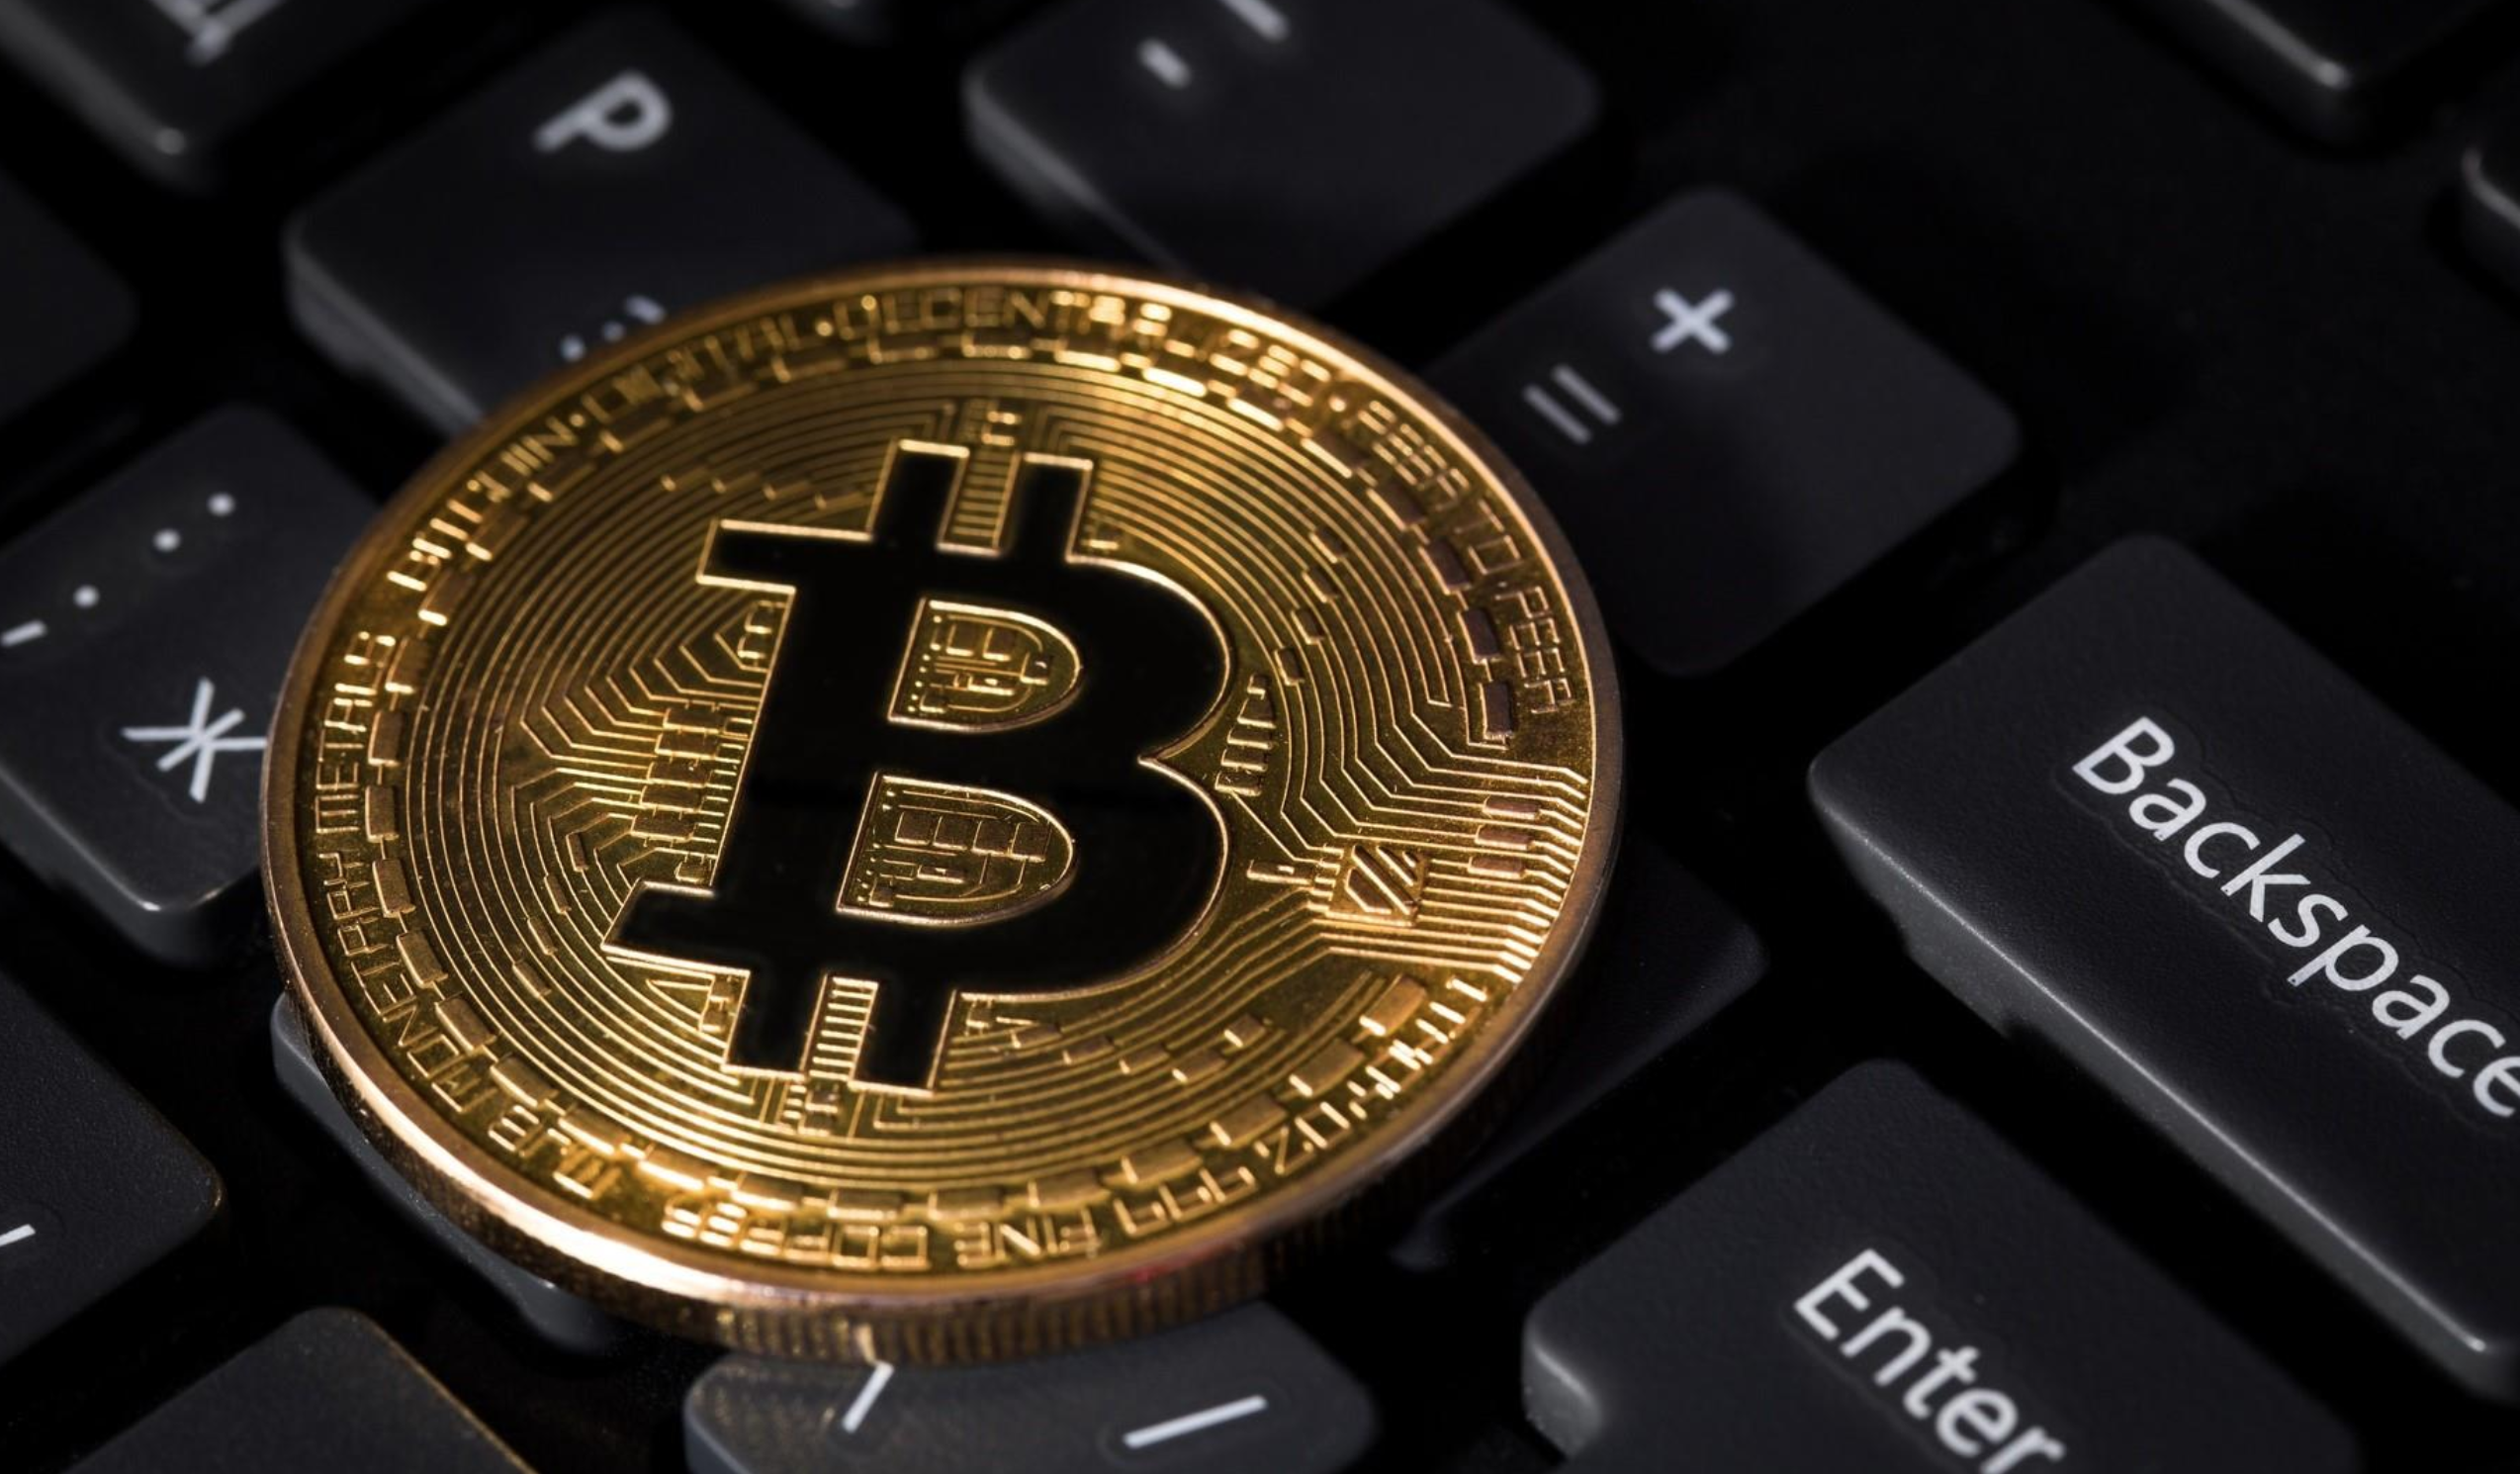 Mining bitcoins cloud based american presidential election betting odds